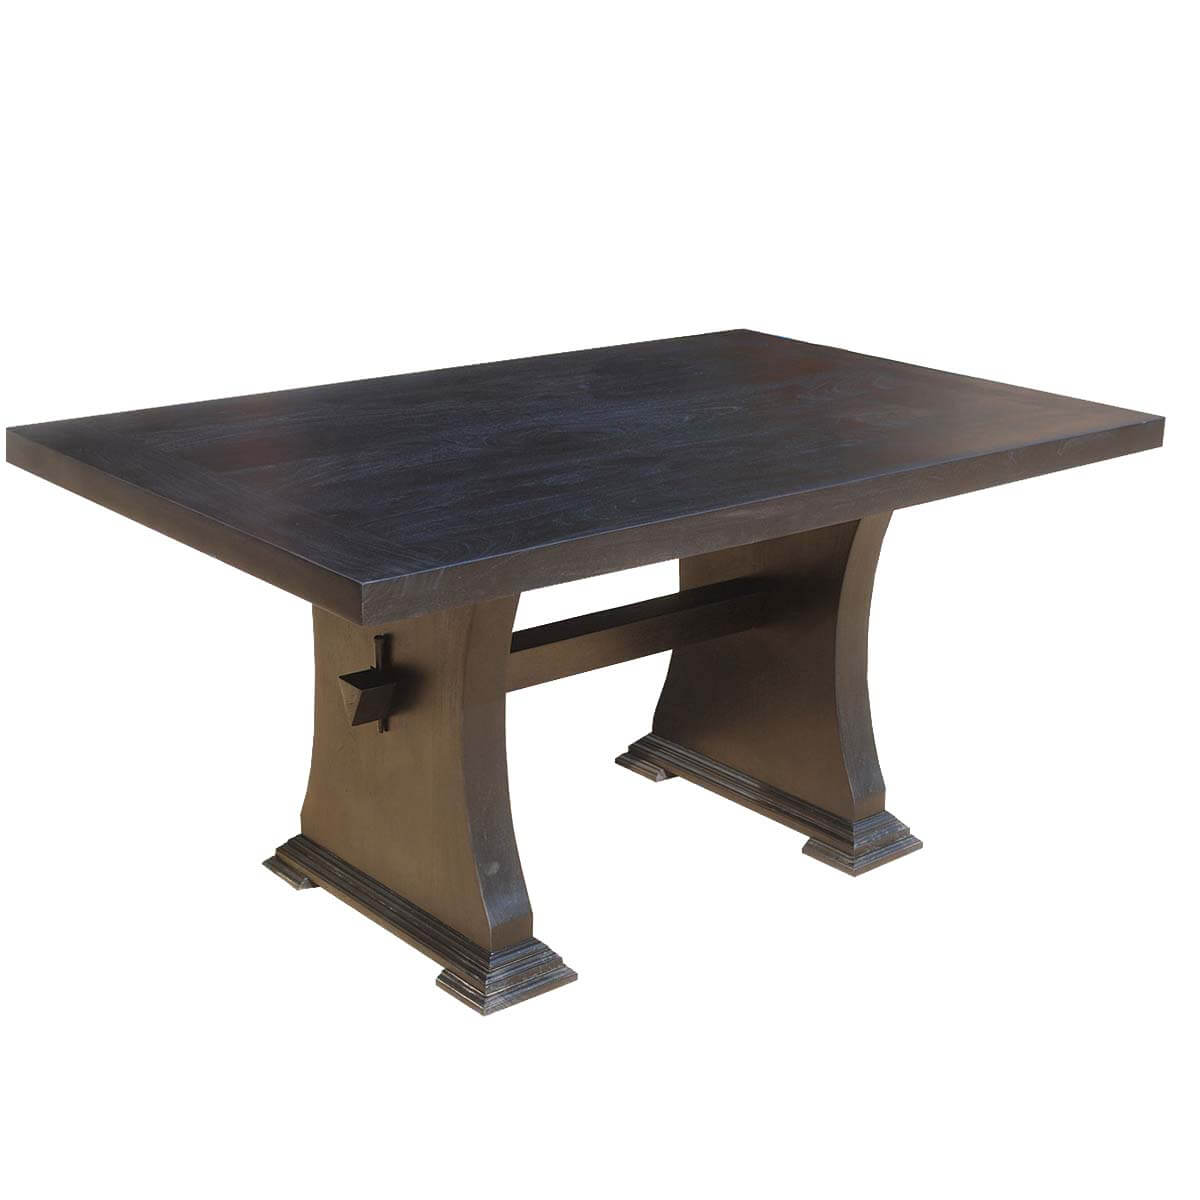 Pelham solid wood rectangle trestle dining room table for Solid wood dining table